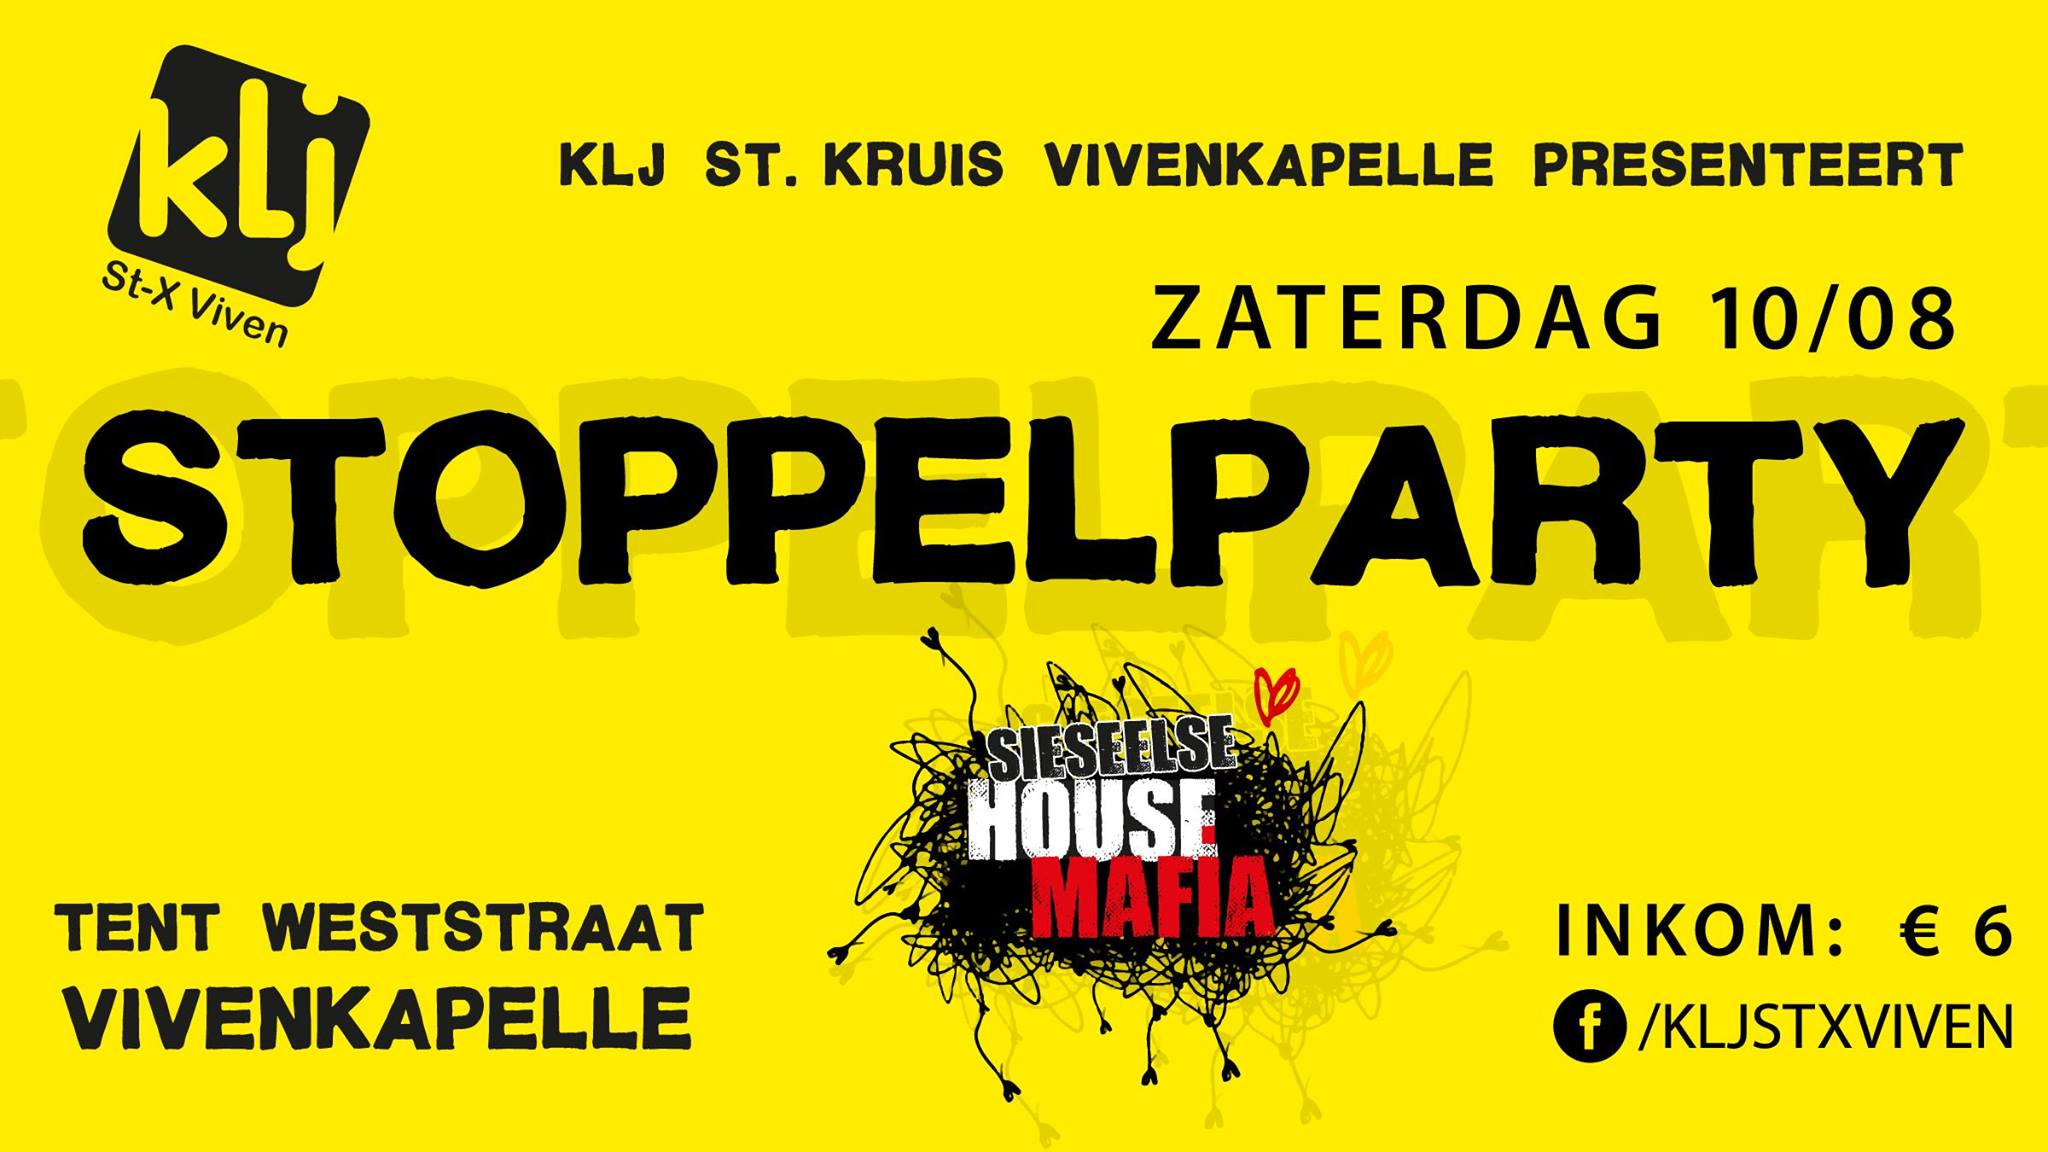 Stoppelparty 2019 affiche op 10/08/2019